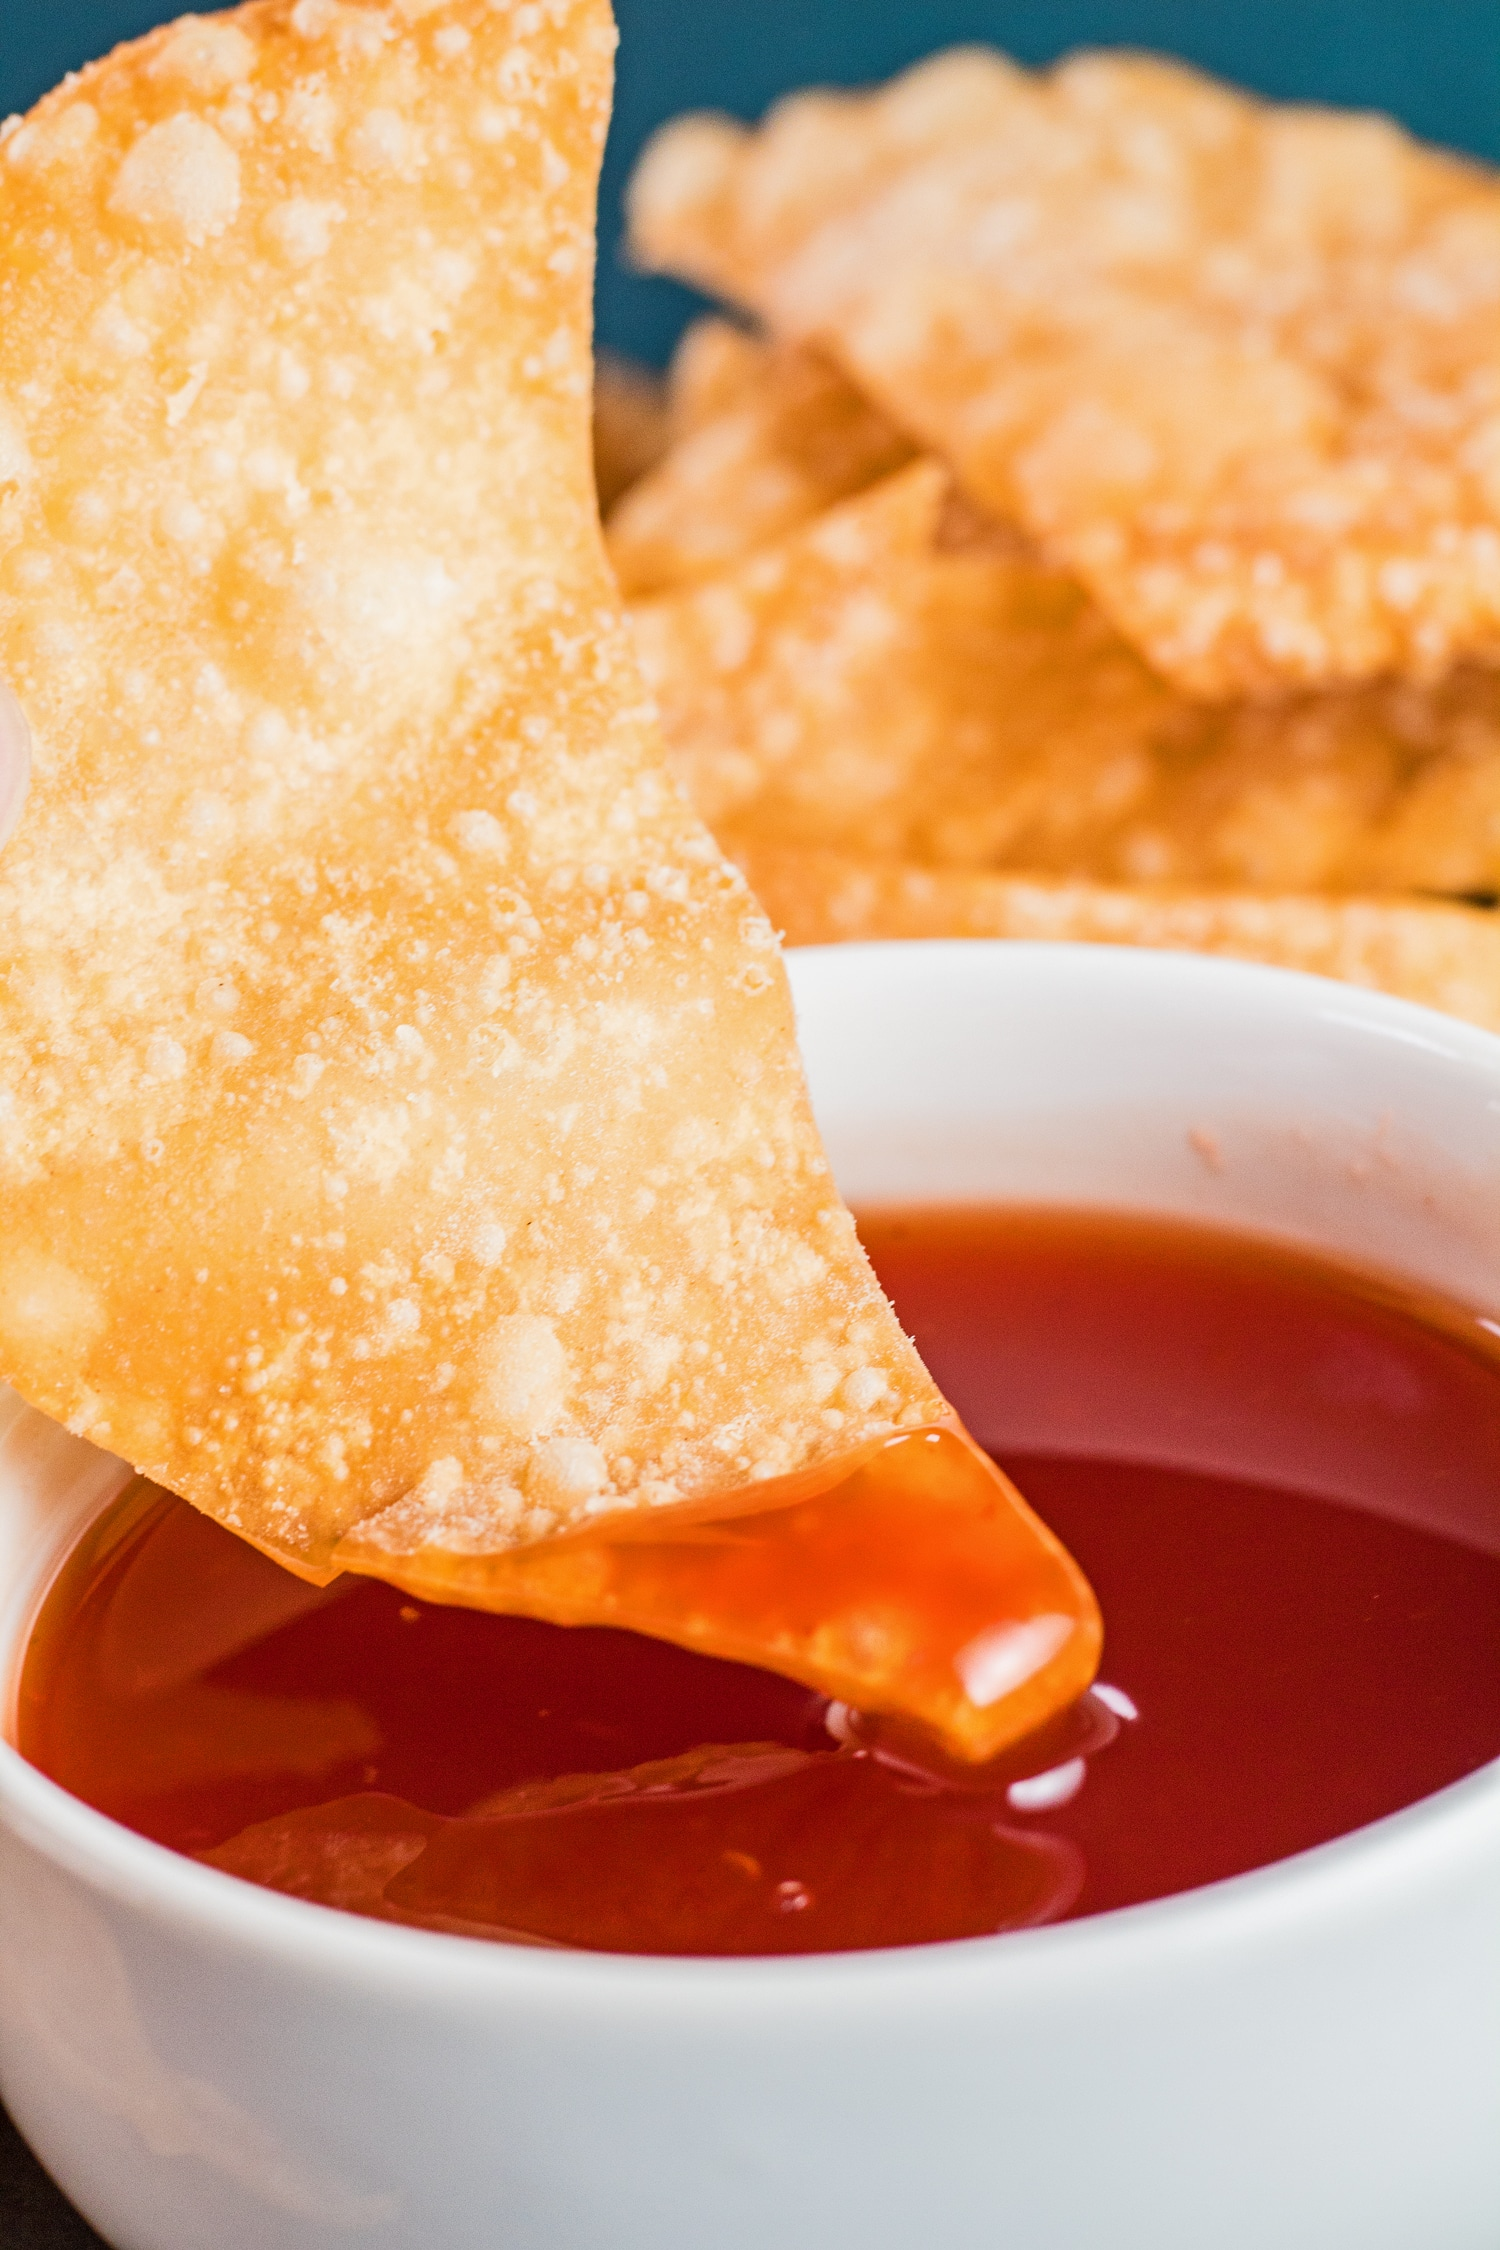 tall closeup of a fried wonton being dipped into the bowl of sweet and sour sauce.